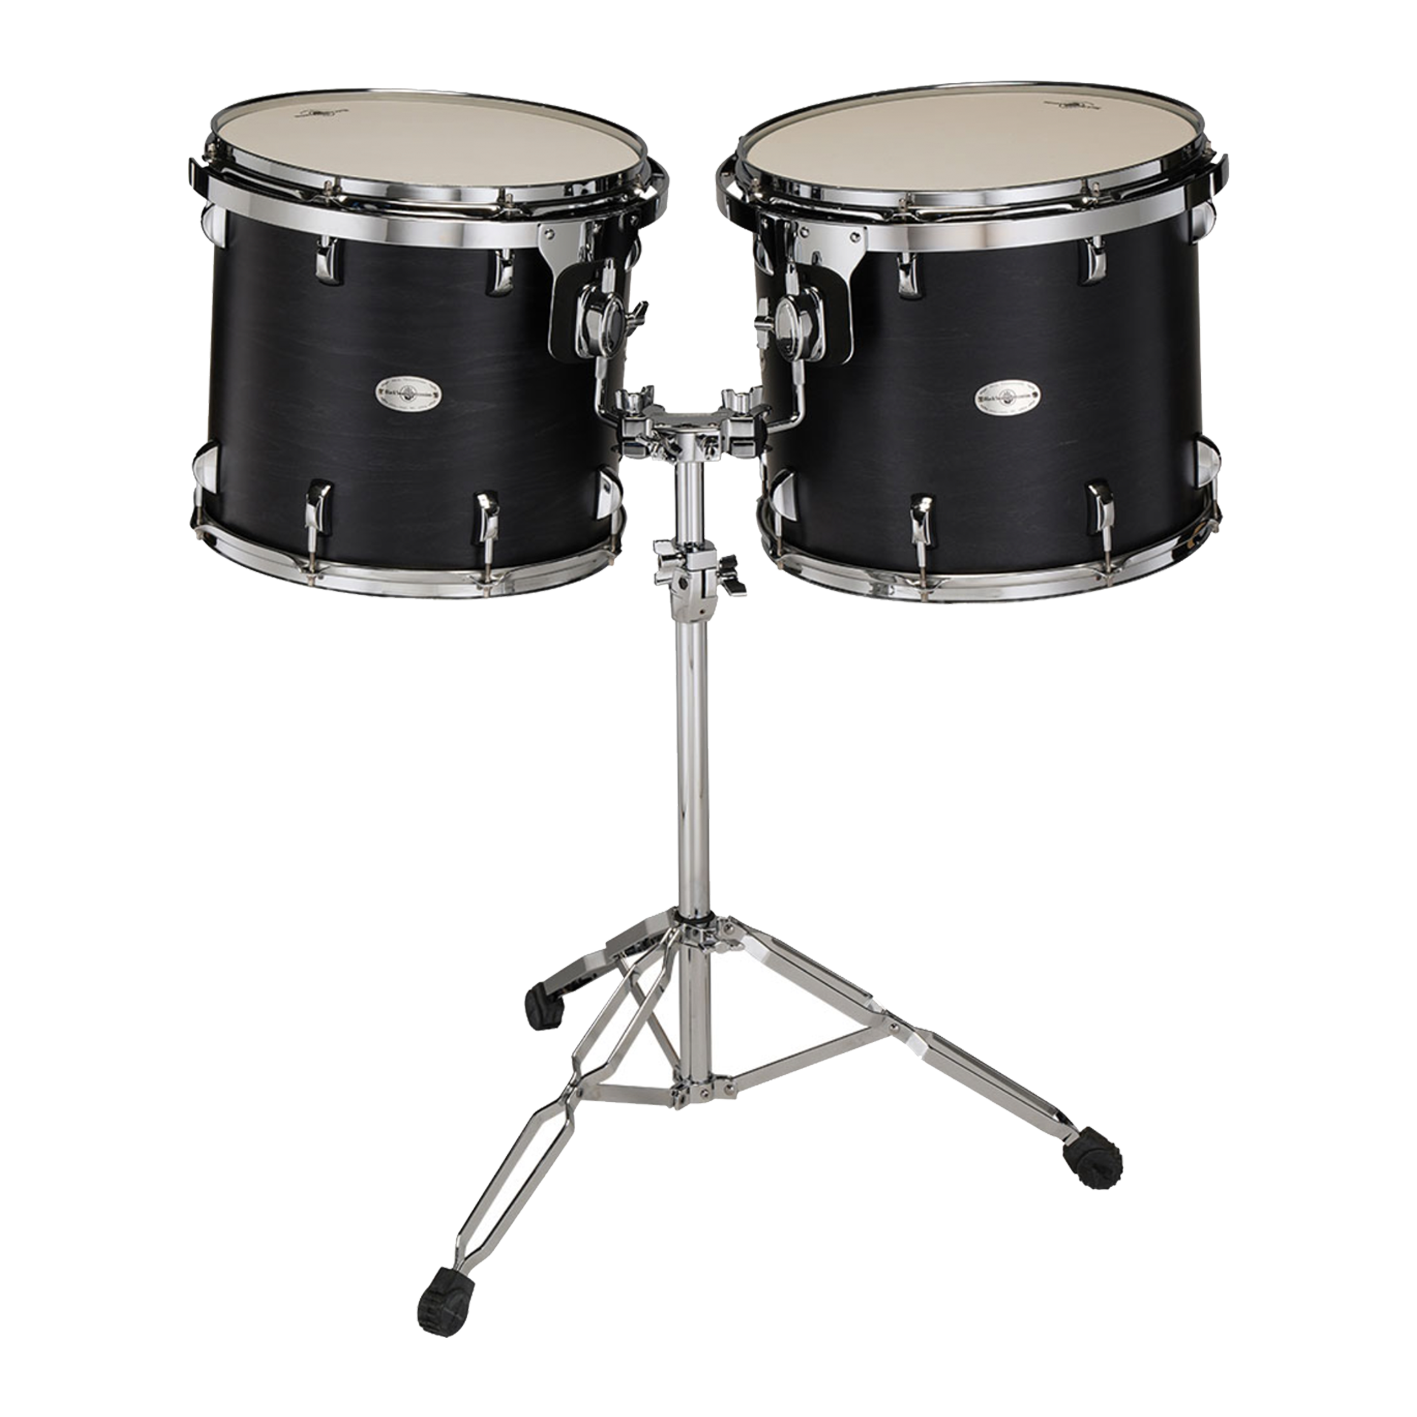 "Black Swamp - 15"" and 16"" Concert Toms Set with Stand-Percussion Accessories-Black Swamp-Music Elements"